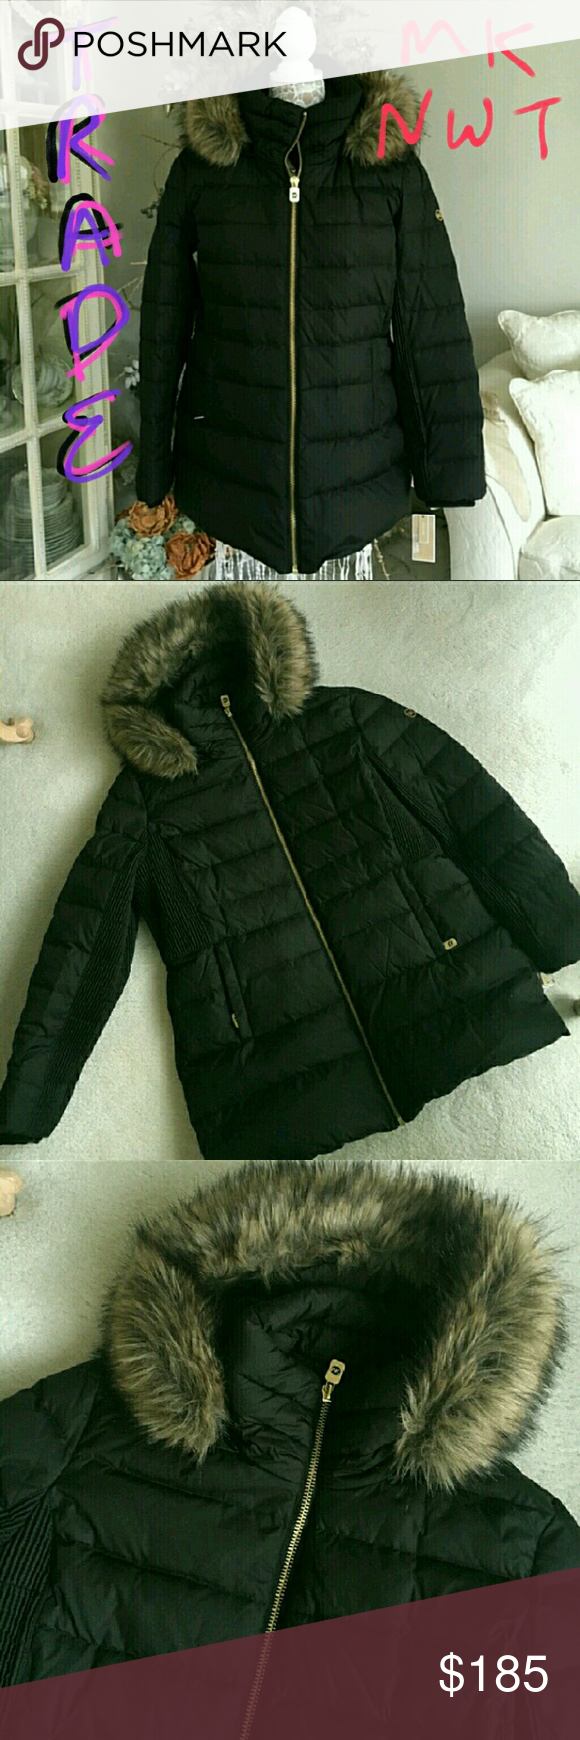 Looking to Trade - NWT Michael Kors Down Jacket Looking to trade.... jacket is New with tags, never worn.  Faux fur hood is removable.  XL Black with Gold hardware Michael Kors Jackets & Coats Puffers